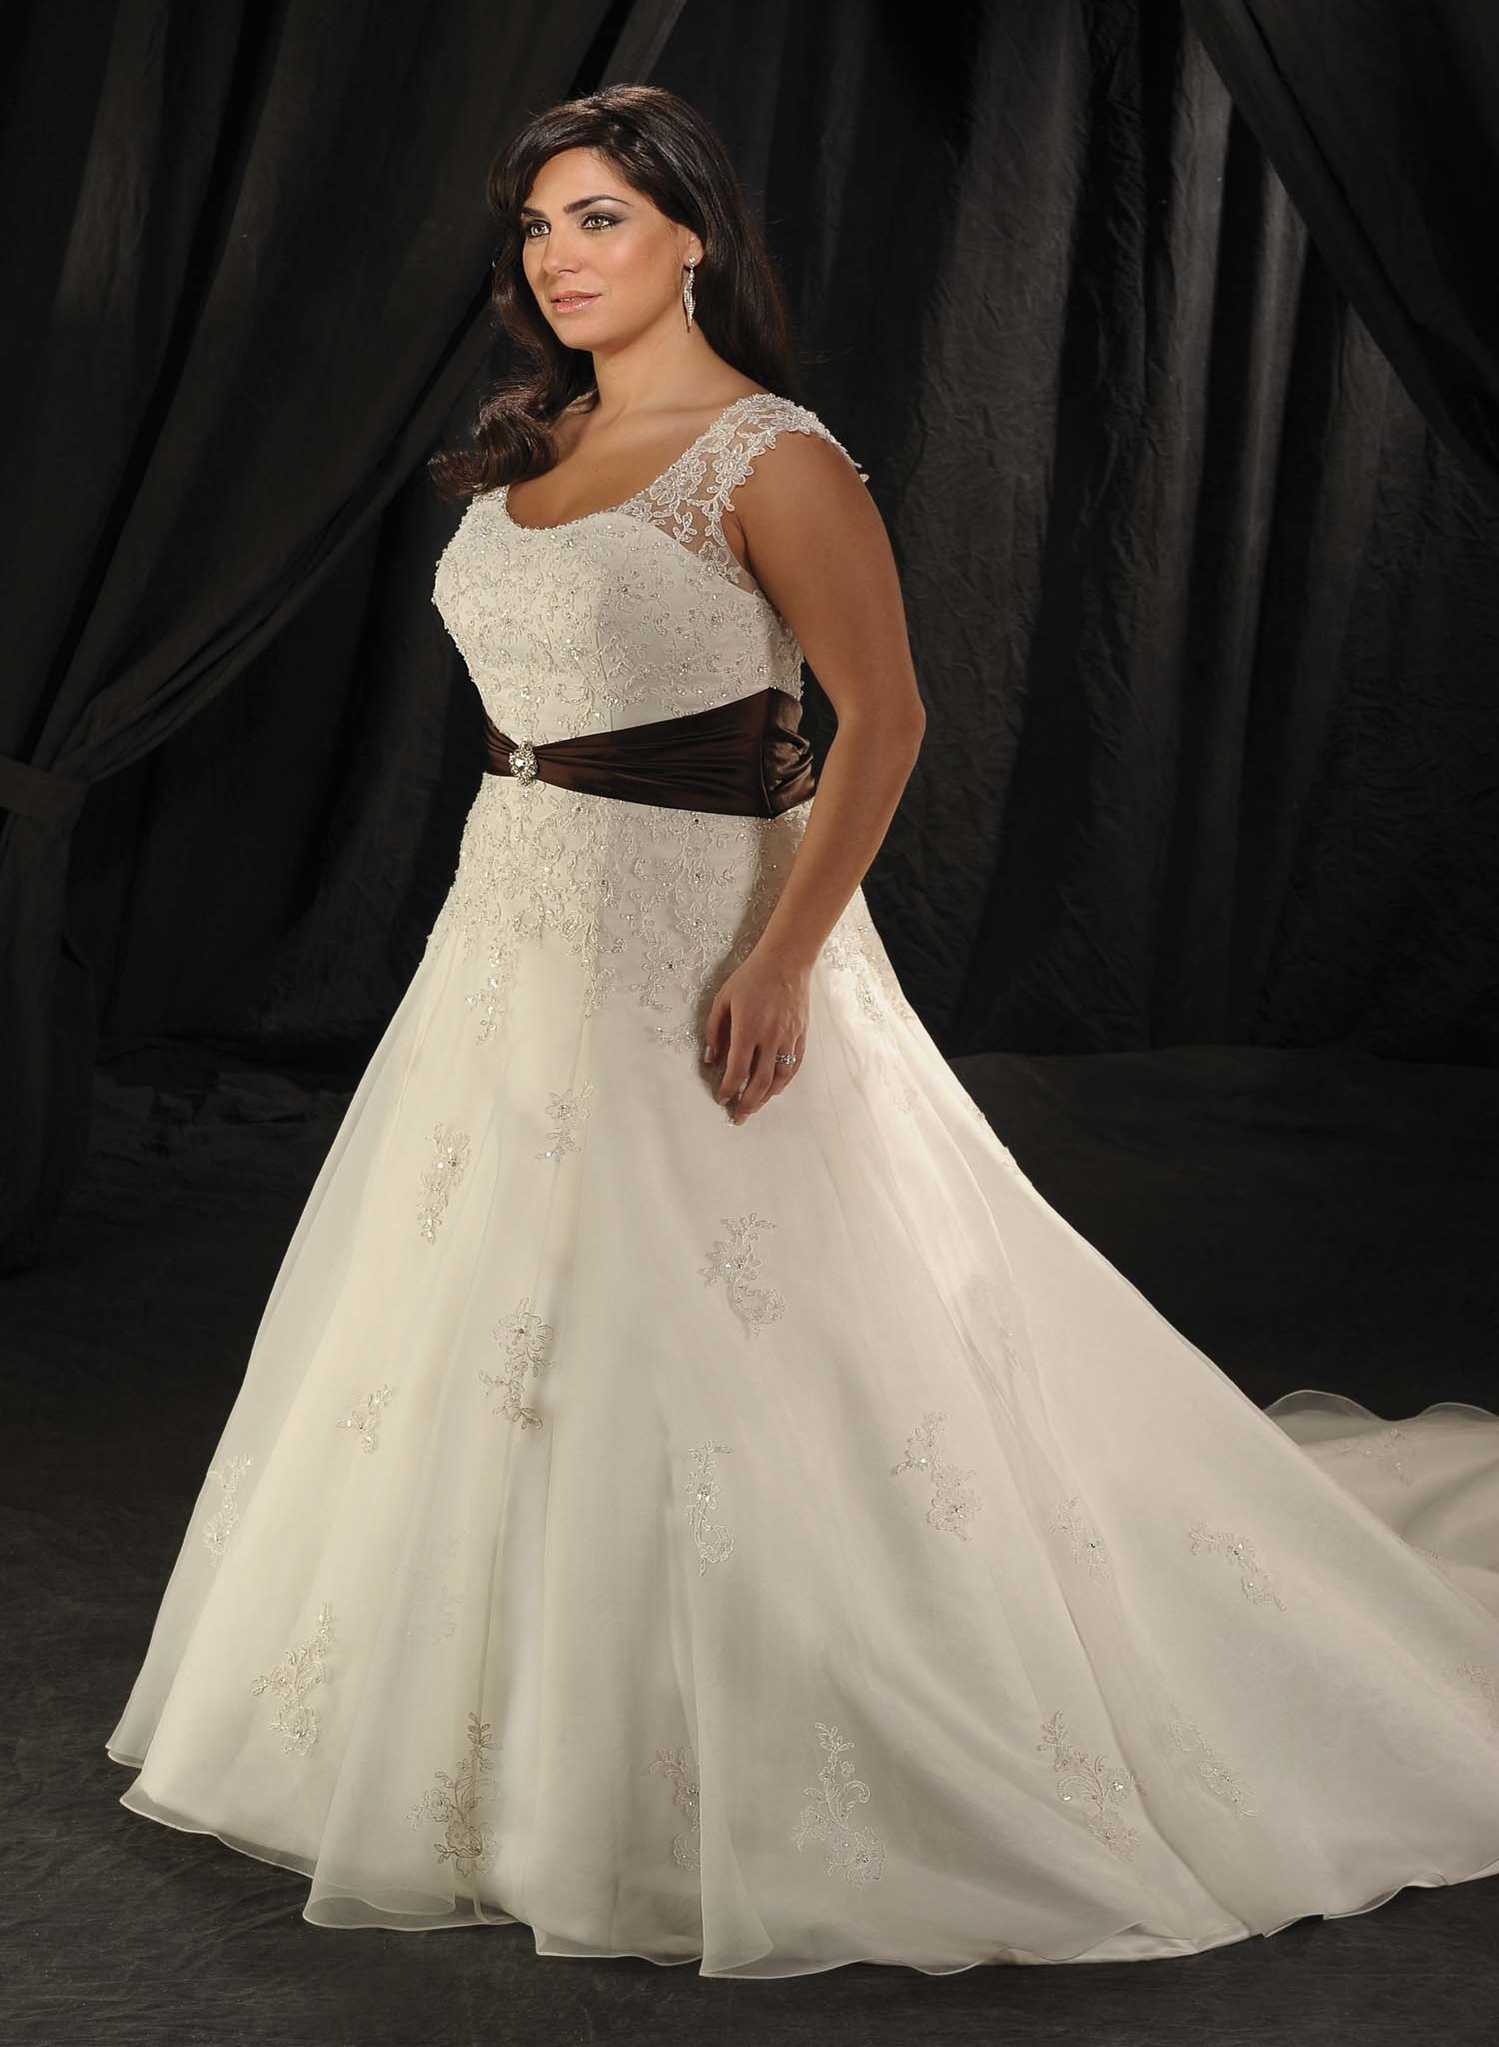 The Wedding Dress Guide for Fullfigured Brides  BridetoBride